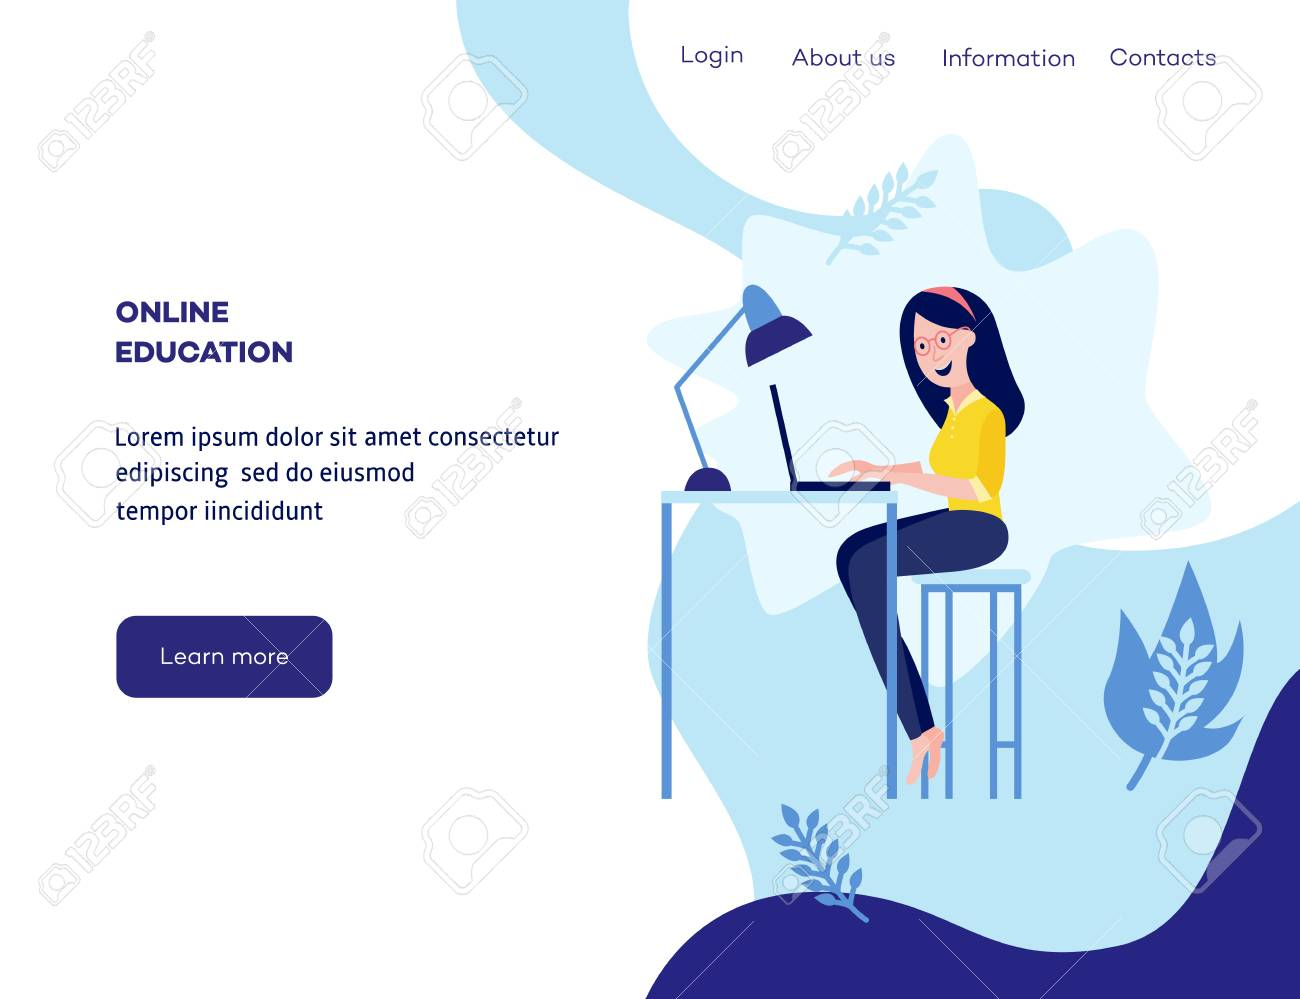 Online distant education concept poster with young girl student sitting at desk typing on laptop smiling on blue background with abstract shapes, leaves, space for text. Vector cartoon illustration - 101761403